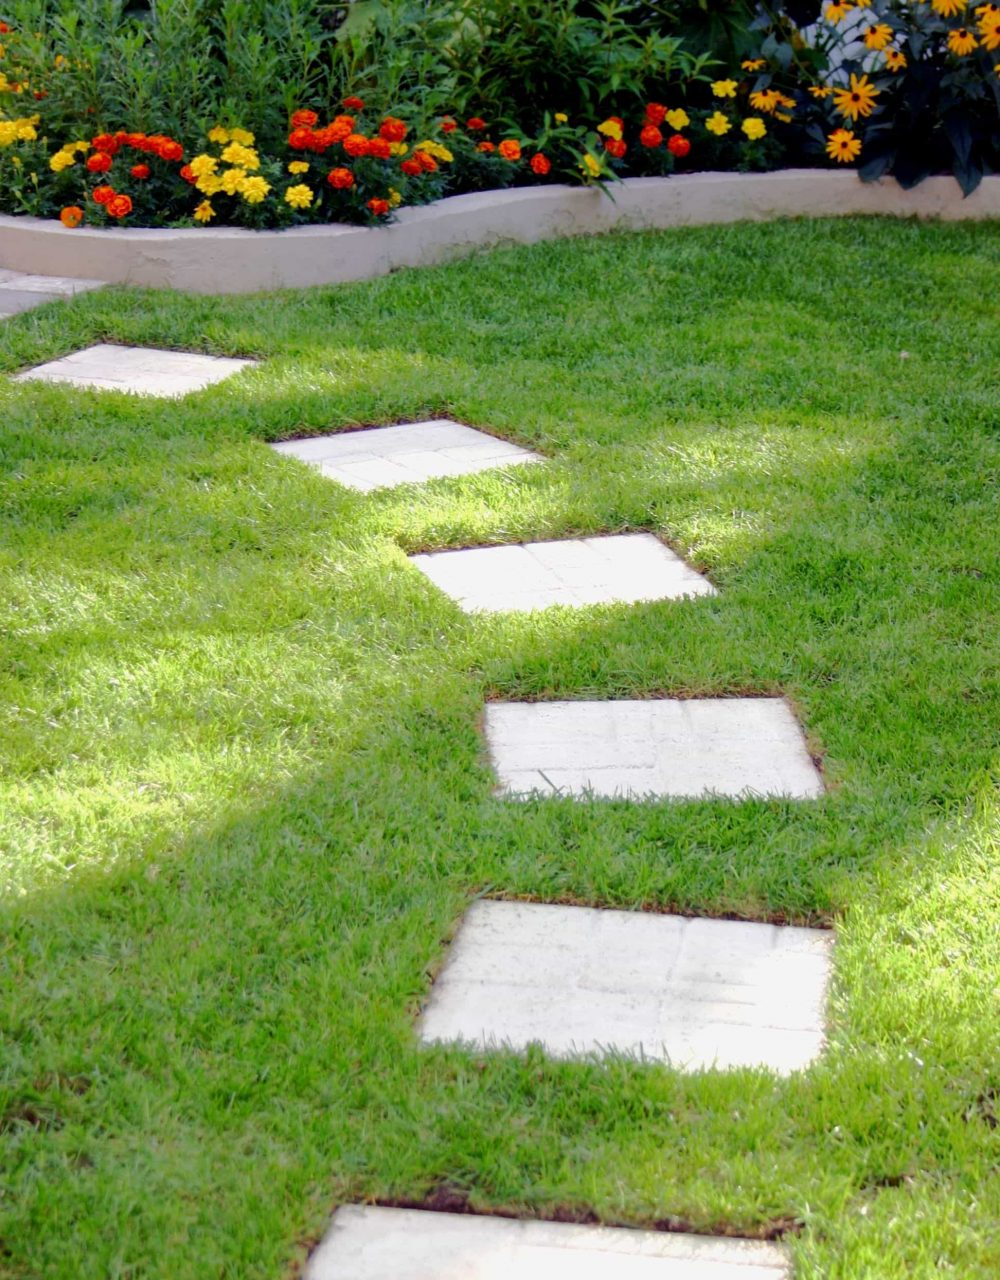 Square Stepping Stones In The Garden Stepping Stones For A Walkway